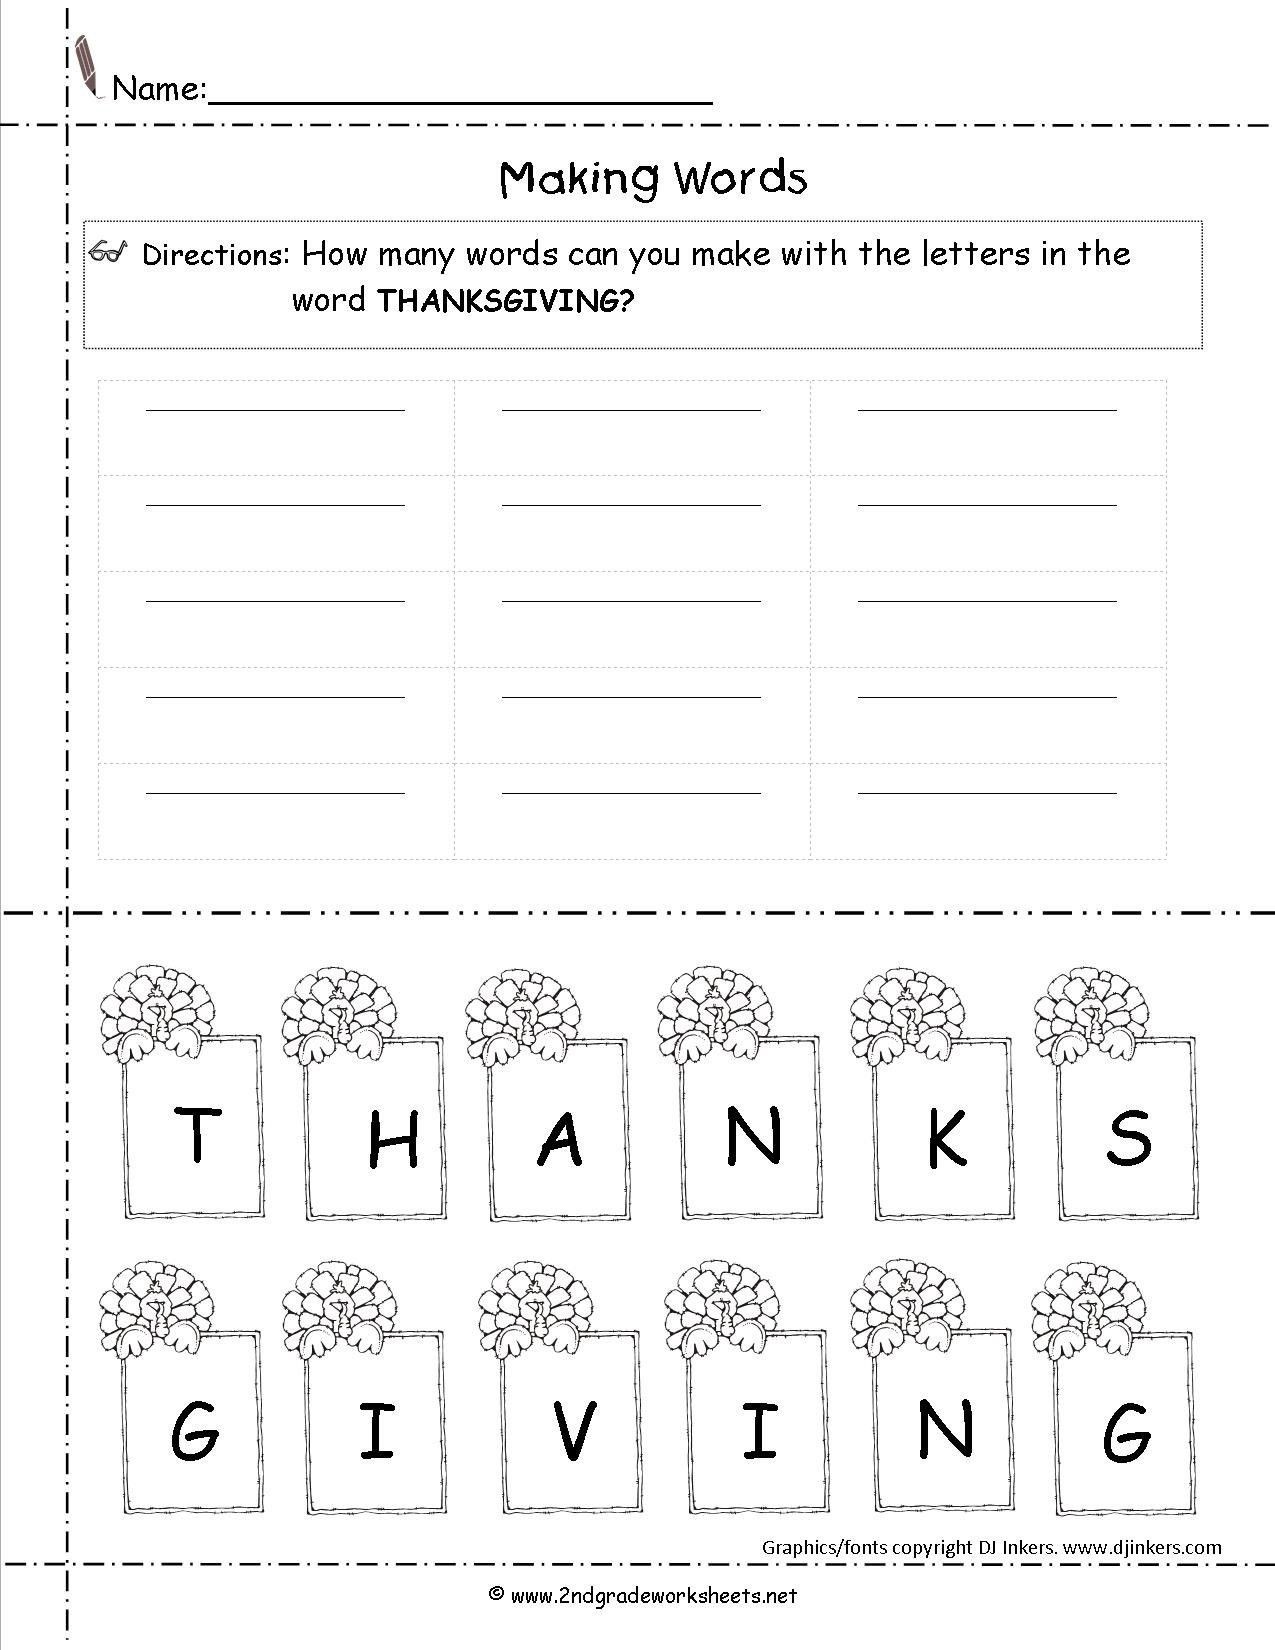 Thanksgiving Math Worksheets 5th Grade Happy Thanksgiving Worksheet for Kids Preschoolers Math and